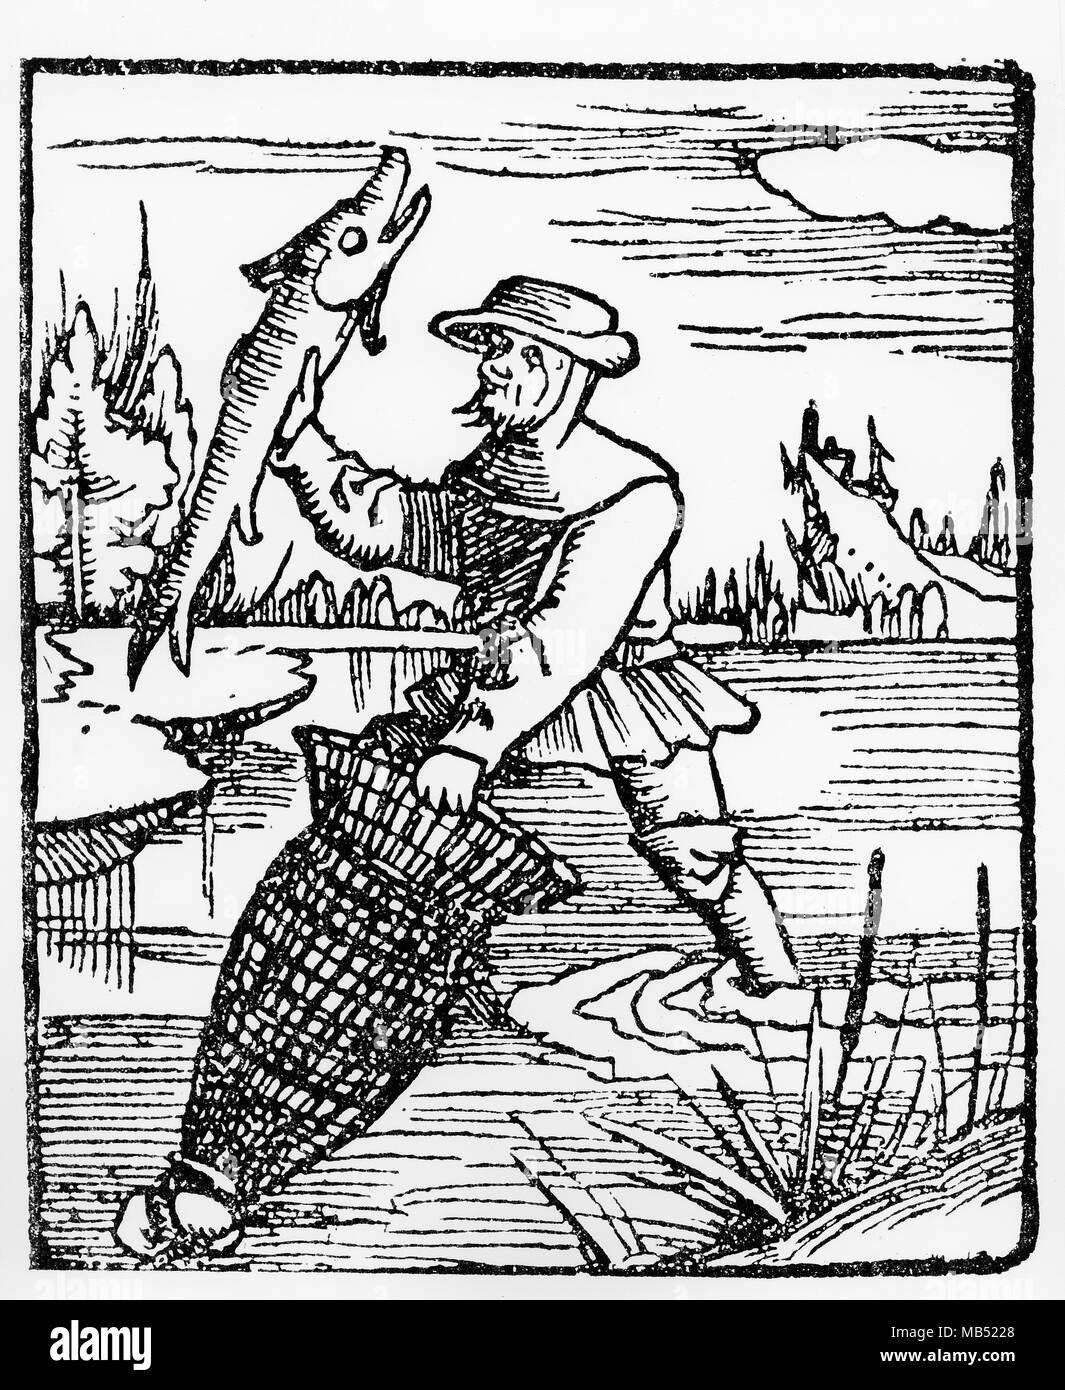 Fisherman with Reuse, woodcut, 16th century - Stock Image